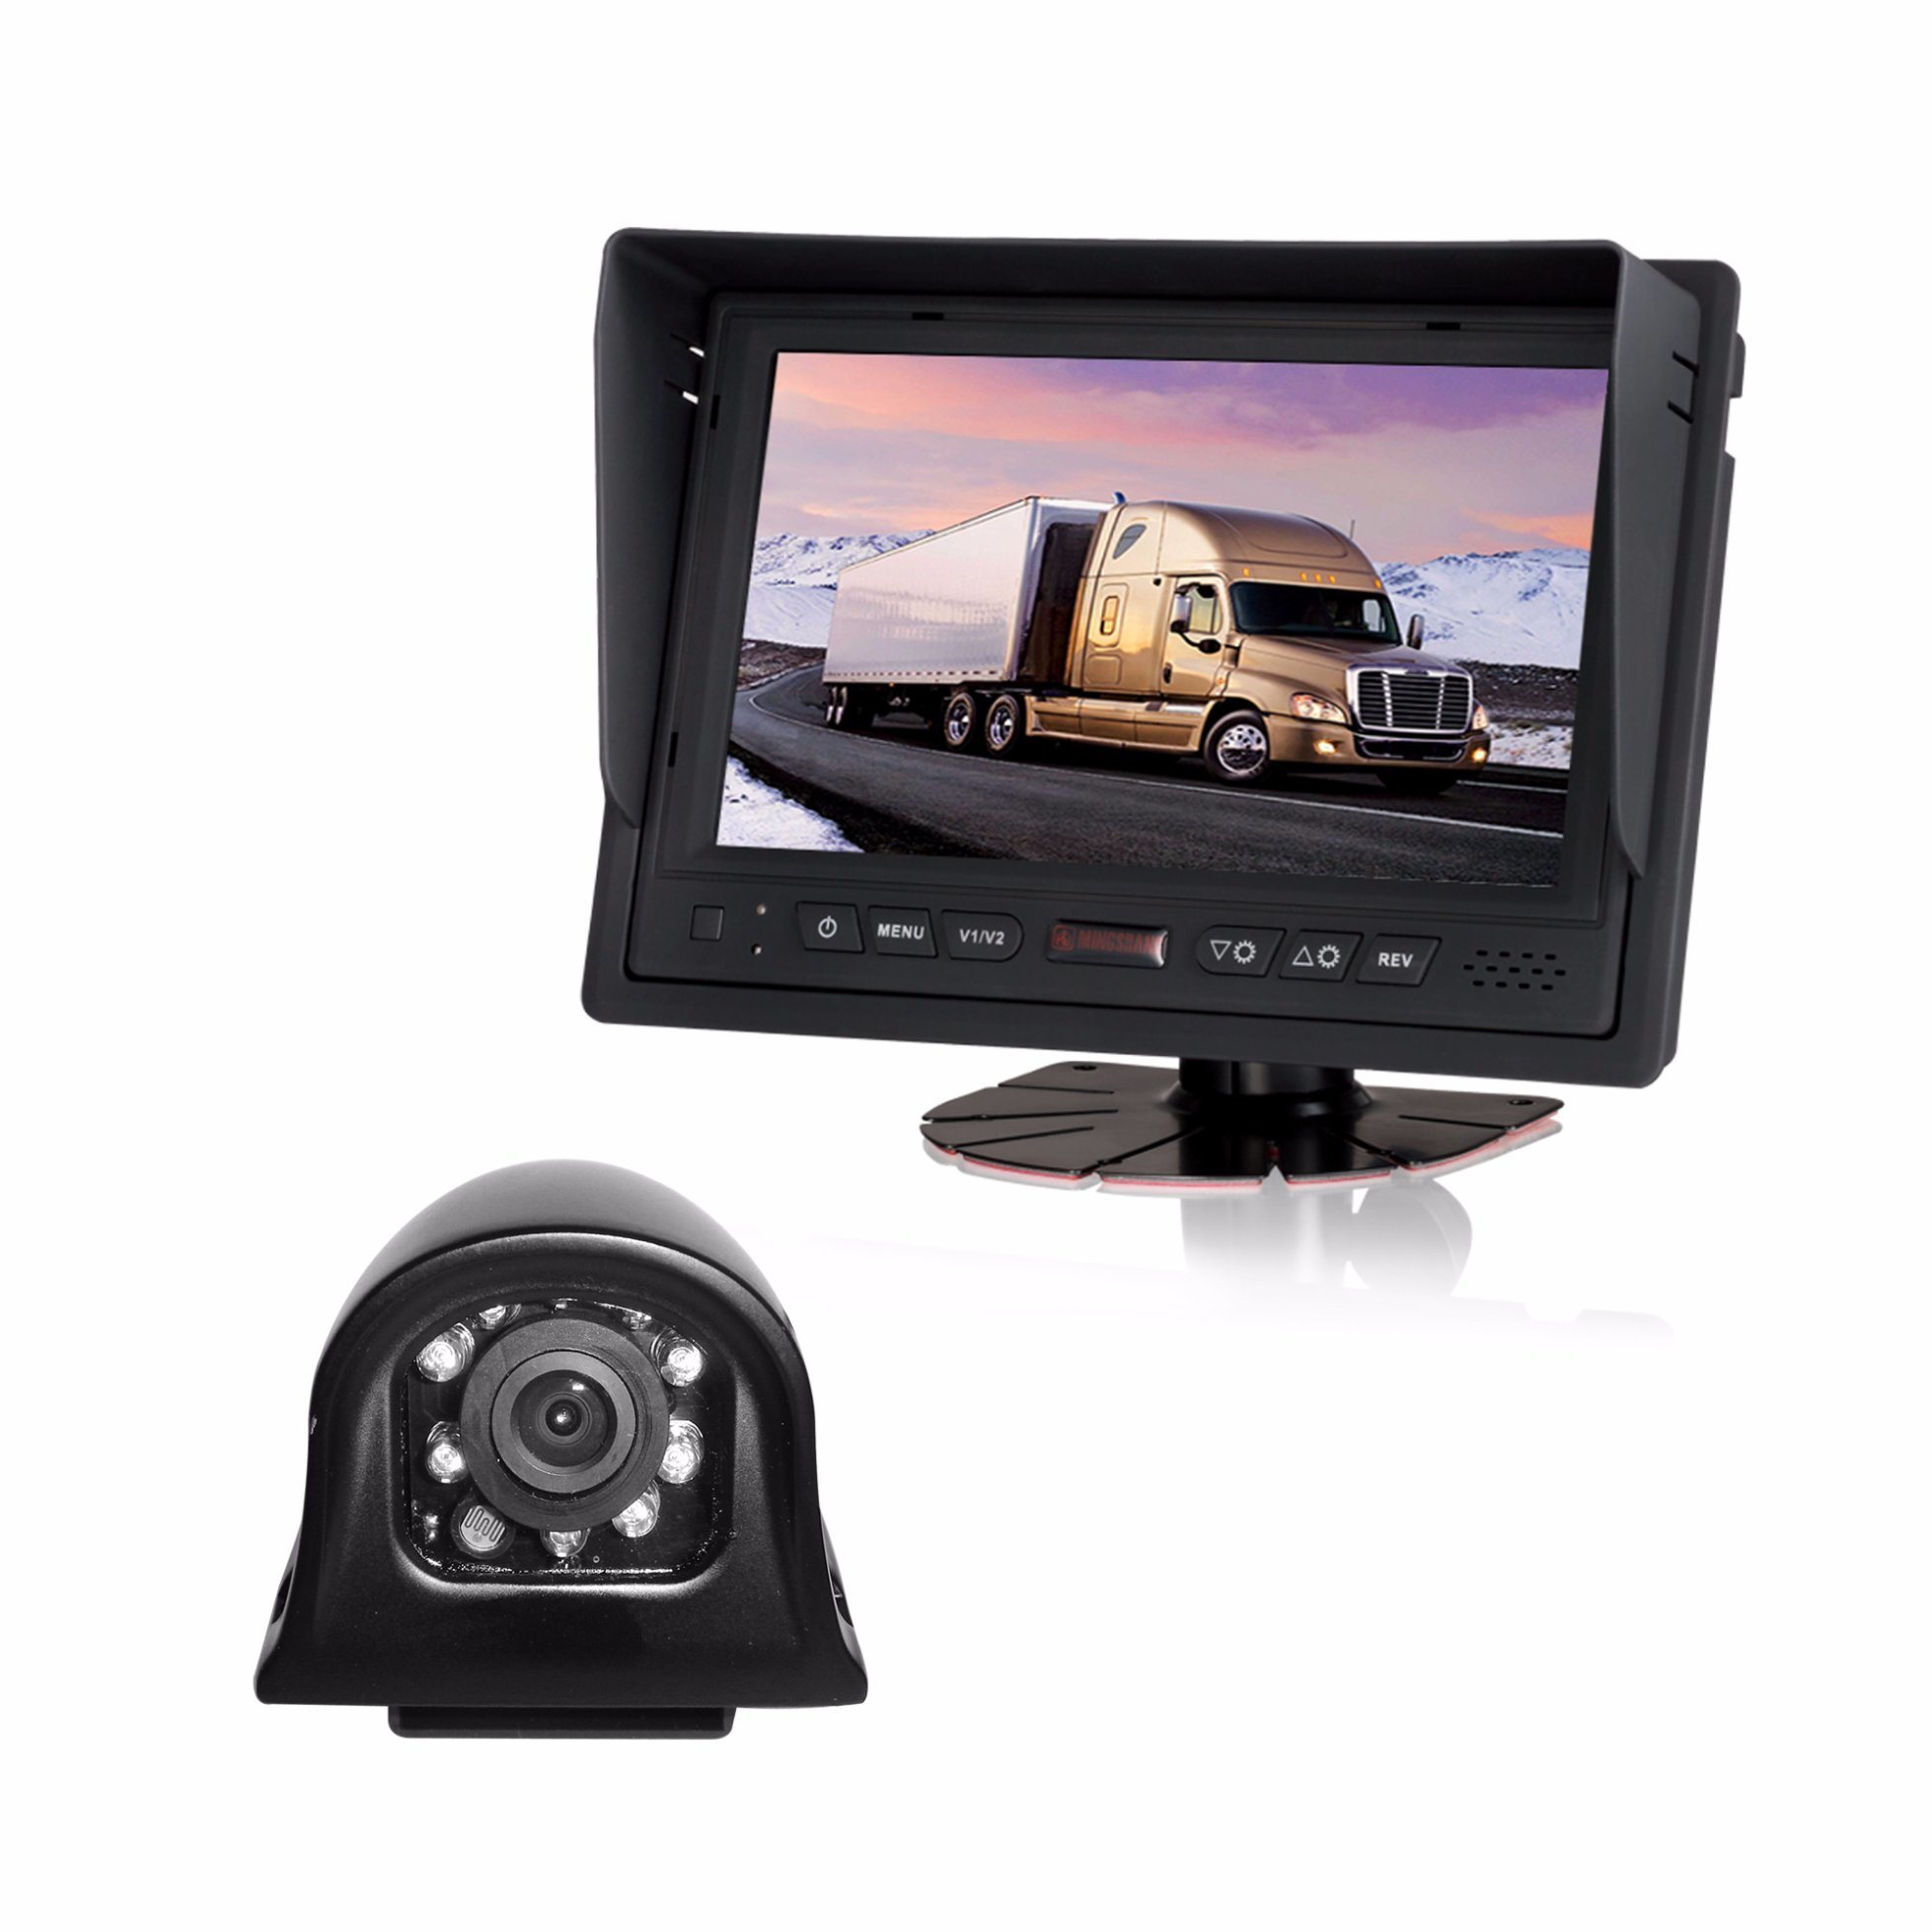 Reversing Camera System, Providing All Round Visibility for Commercial Vehicles and Mobile Plant